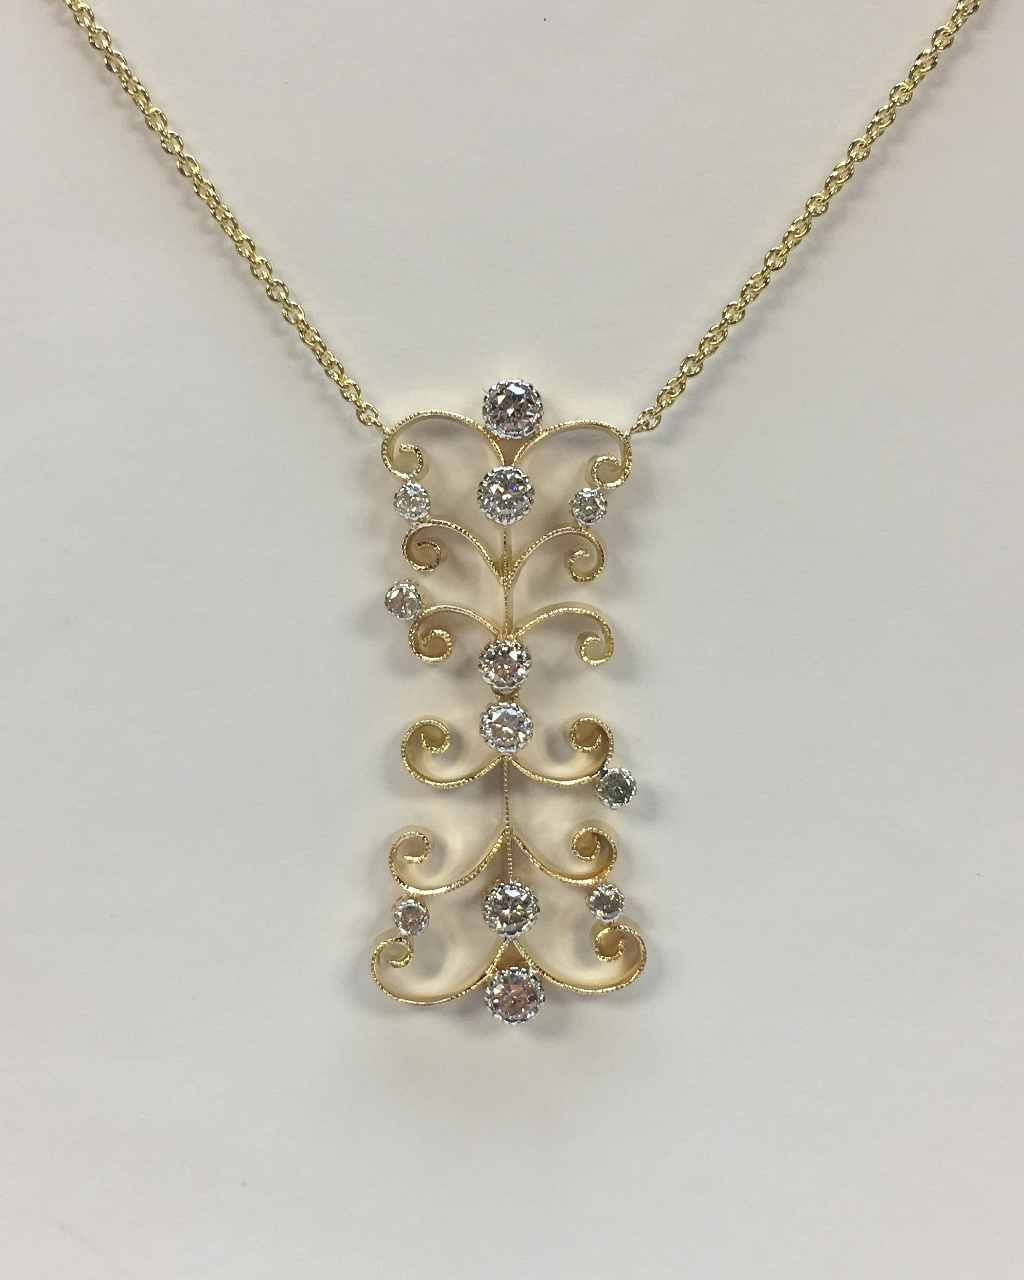 Almost 1 Carat Total Weight Yellow Gold Diamond Necklace